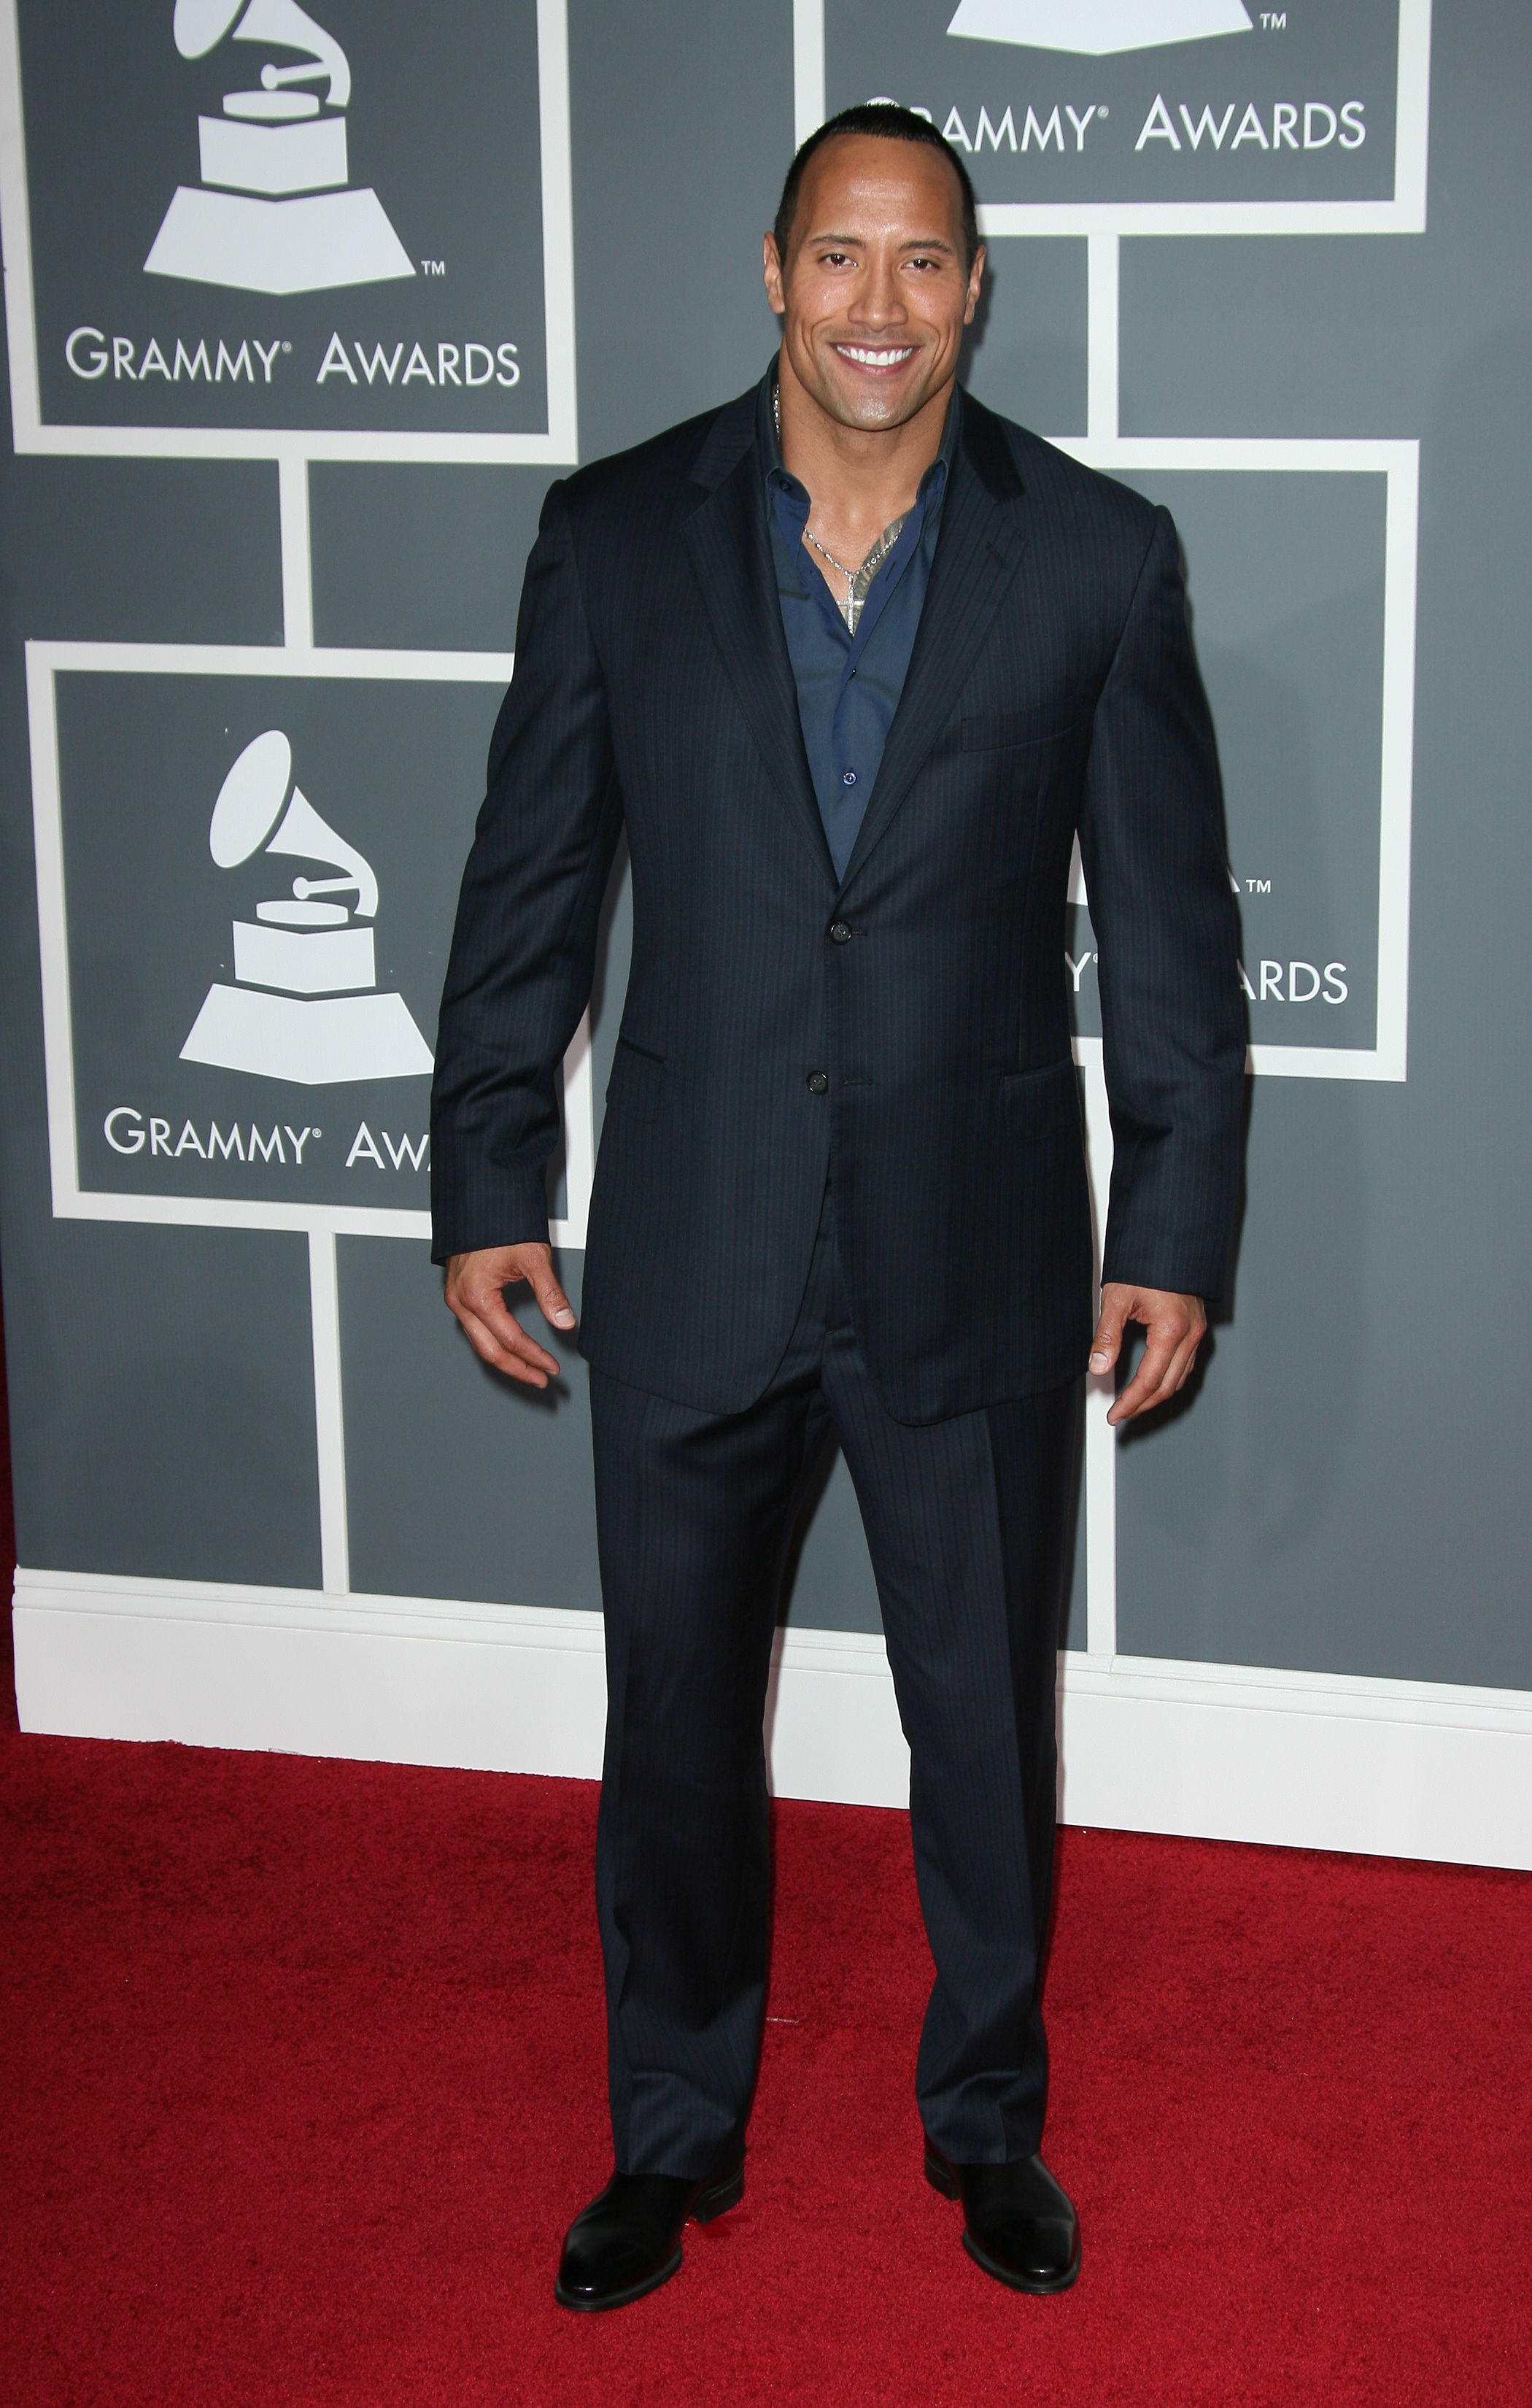 Dwayne Johnson arrives at the 51st Annual Grammy Awards at the Staples Center in Los Angeles on Feb. 8, 2009.